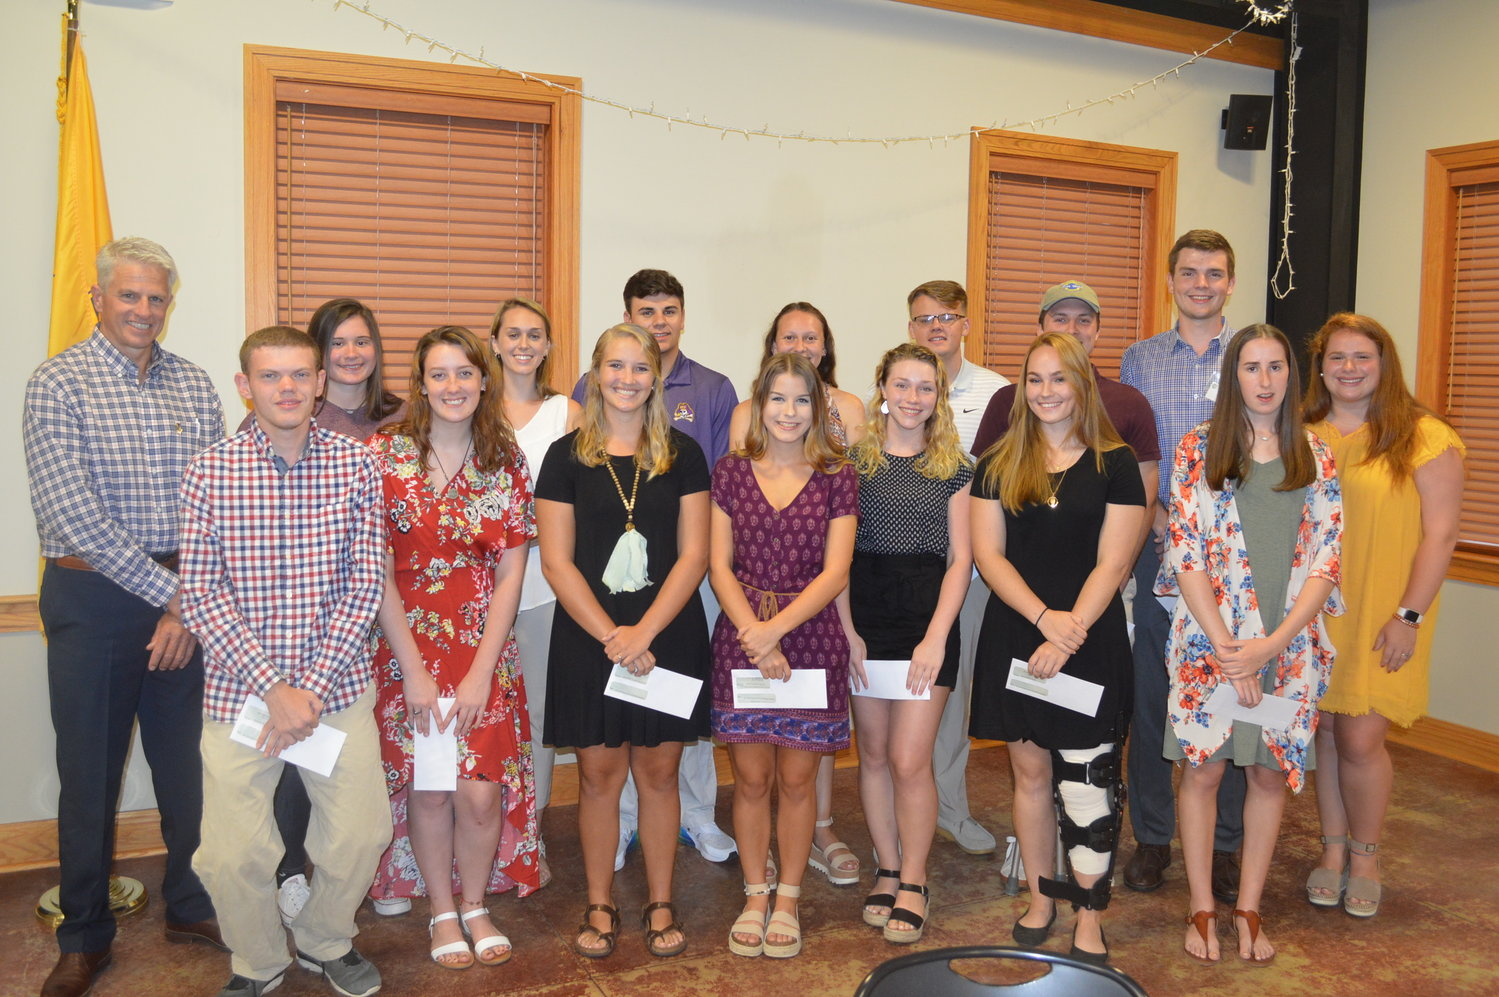 Silk Hope Ruritan Scholarship recipients — awarded more than $9,000 in scholarship funds — were recently honnored. Pictured above (from left) are Ruritan President Neill Lindley, .Aaron Partin, Jocelyn Mitchell,  Jennifer Henderson, Miranda Griffin, Emery Moore, .Forrest James, Mackenzie Clark, Savanna Cook, Aubree Wilson, Joseph Mitchell, .Sydney Suits, Kyle Dekaney, Lane Teague, Emily Pierce, Baylee Fox. Not picured are scholarship recipients McKinley Rogers, Emma Drumheller, Thomas Smith, Corrine Collison, Rocky Andrews.